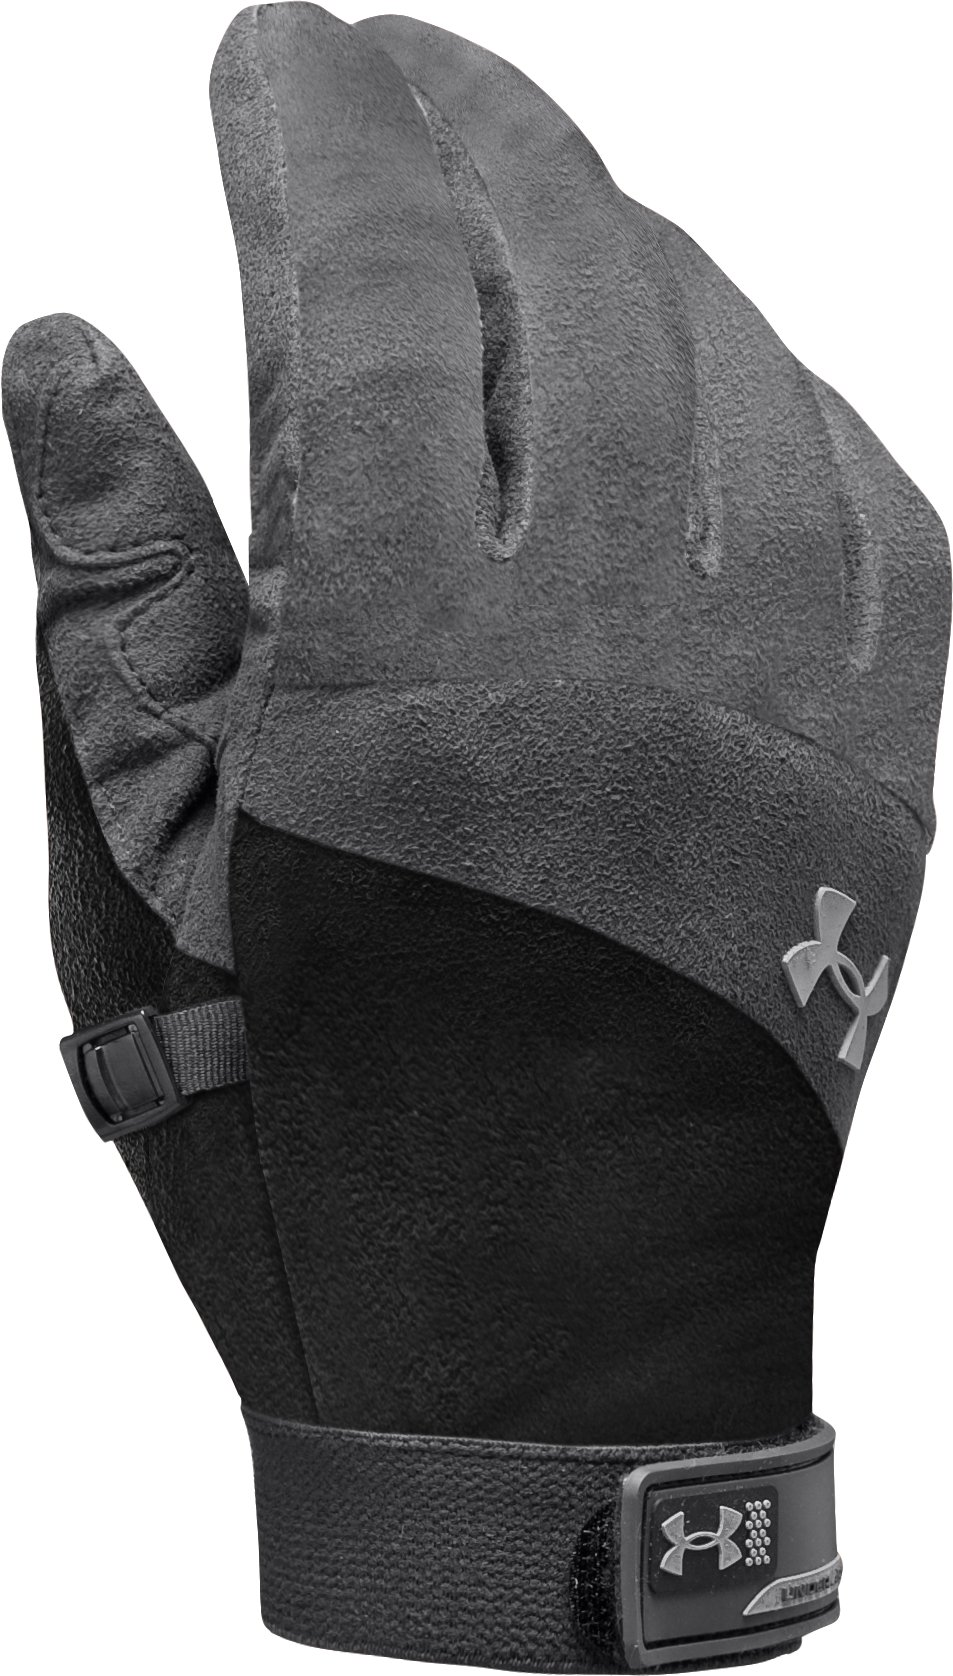 Men's Camo Idylwild Gloves, Black